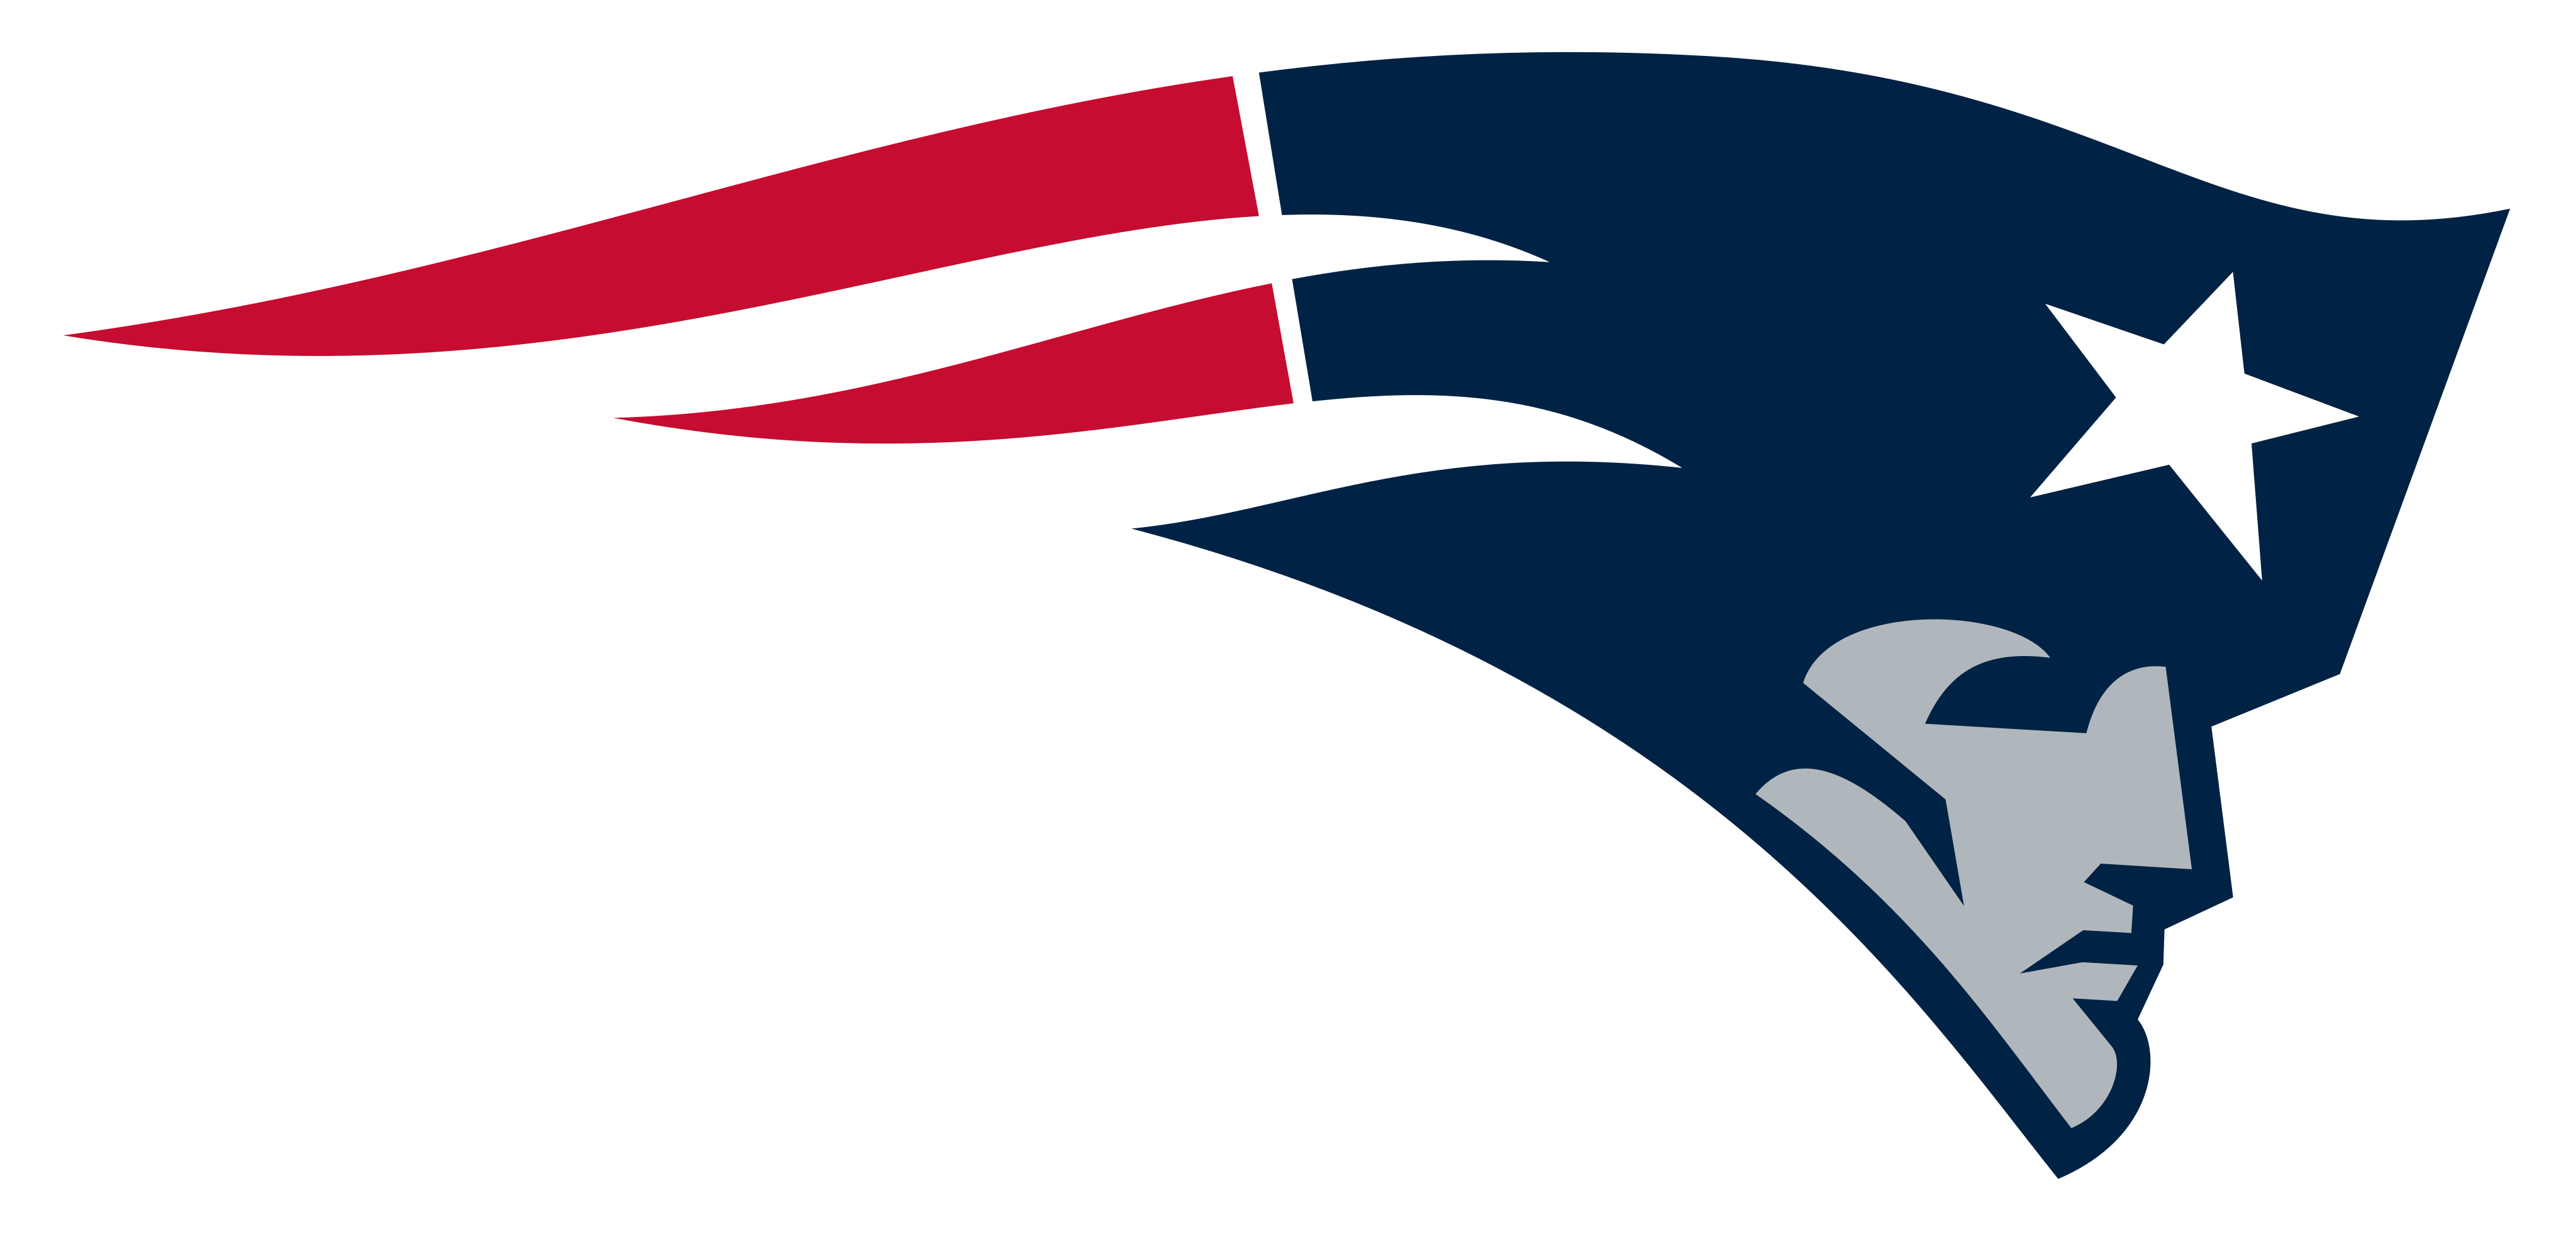 new england patriots logo - New England Patriots Logo